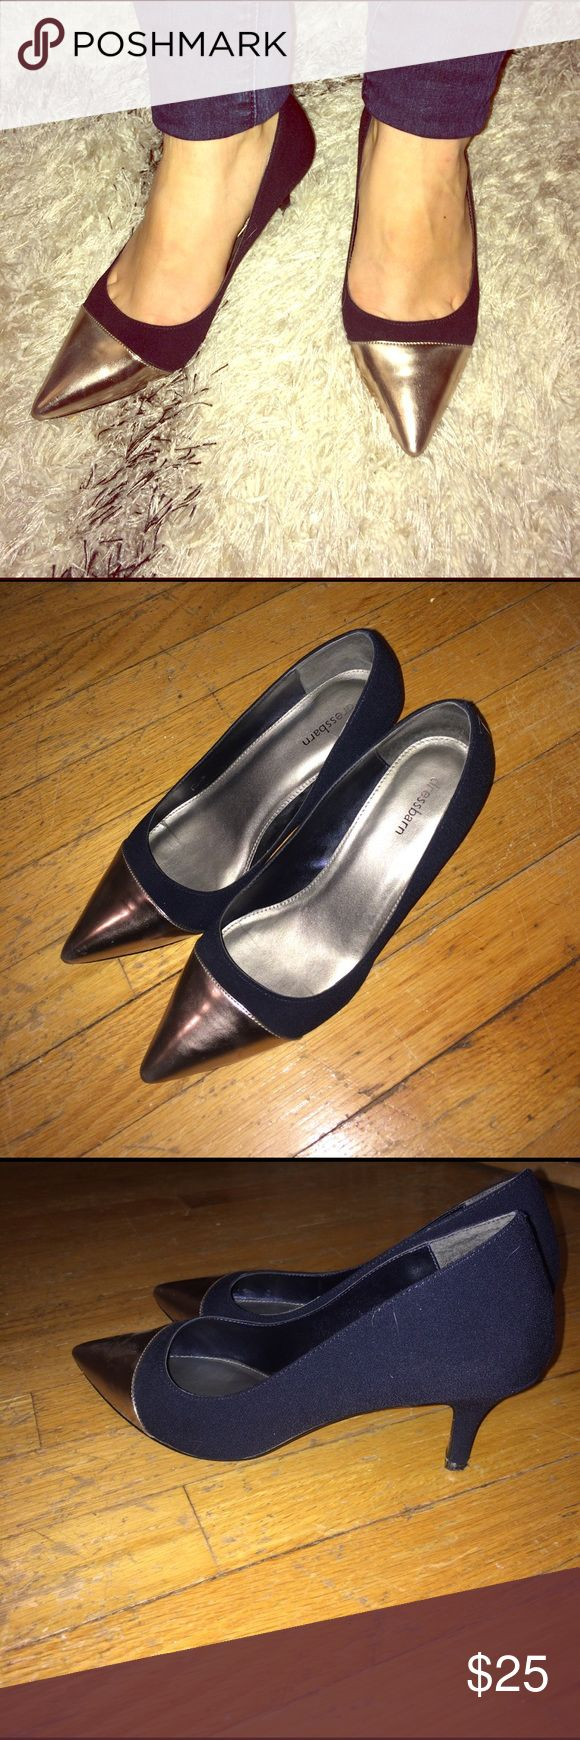 Dress Barn two tone heel Dress Barn silver and navy two tone heel. Size 6.5. Slightly worn, great condition. Bottom plastic piece of heel slightly shifted, see photo. Dress Barn Shoes Heels